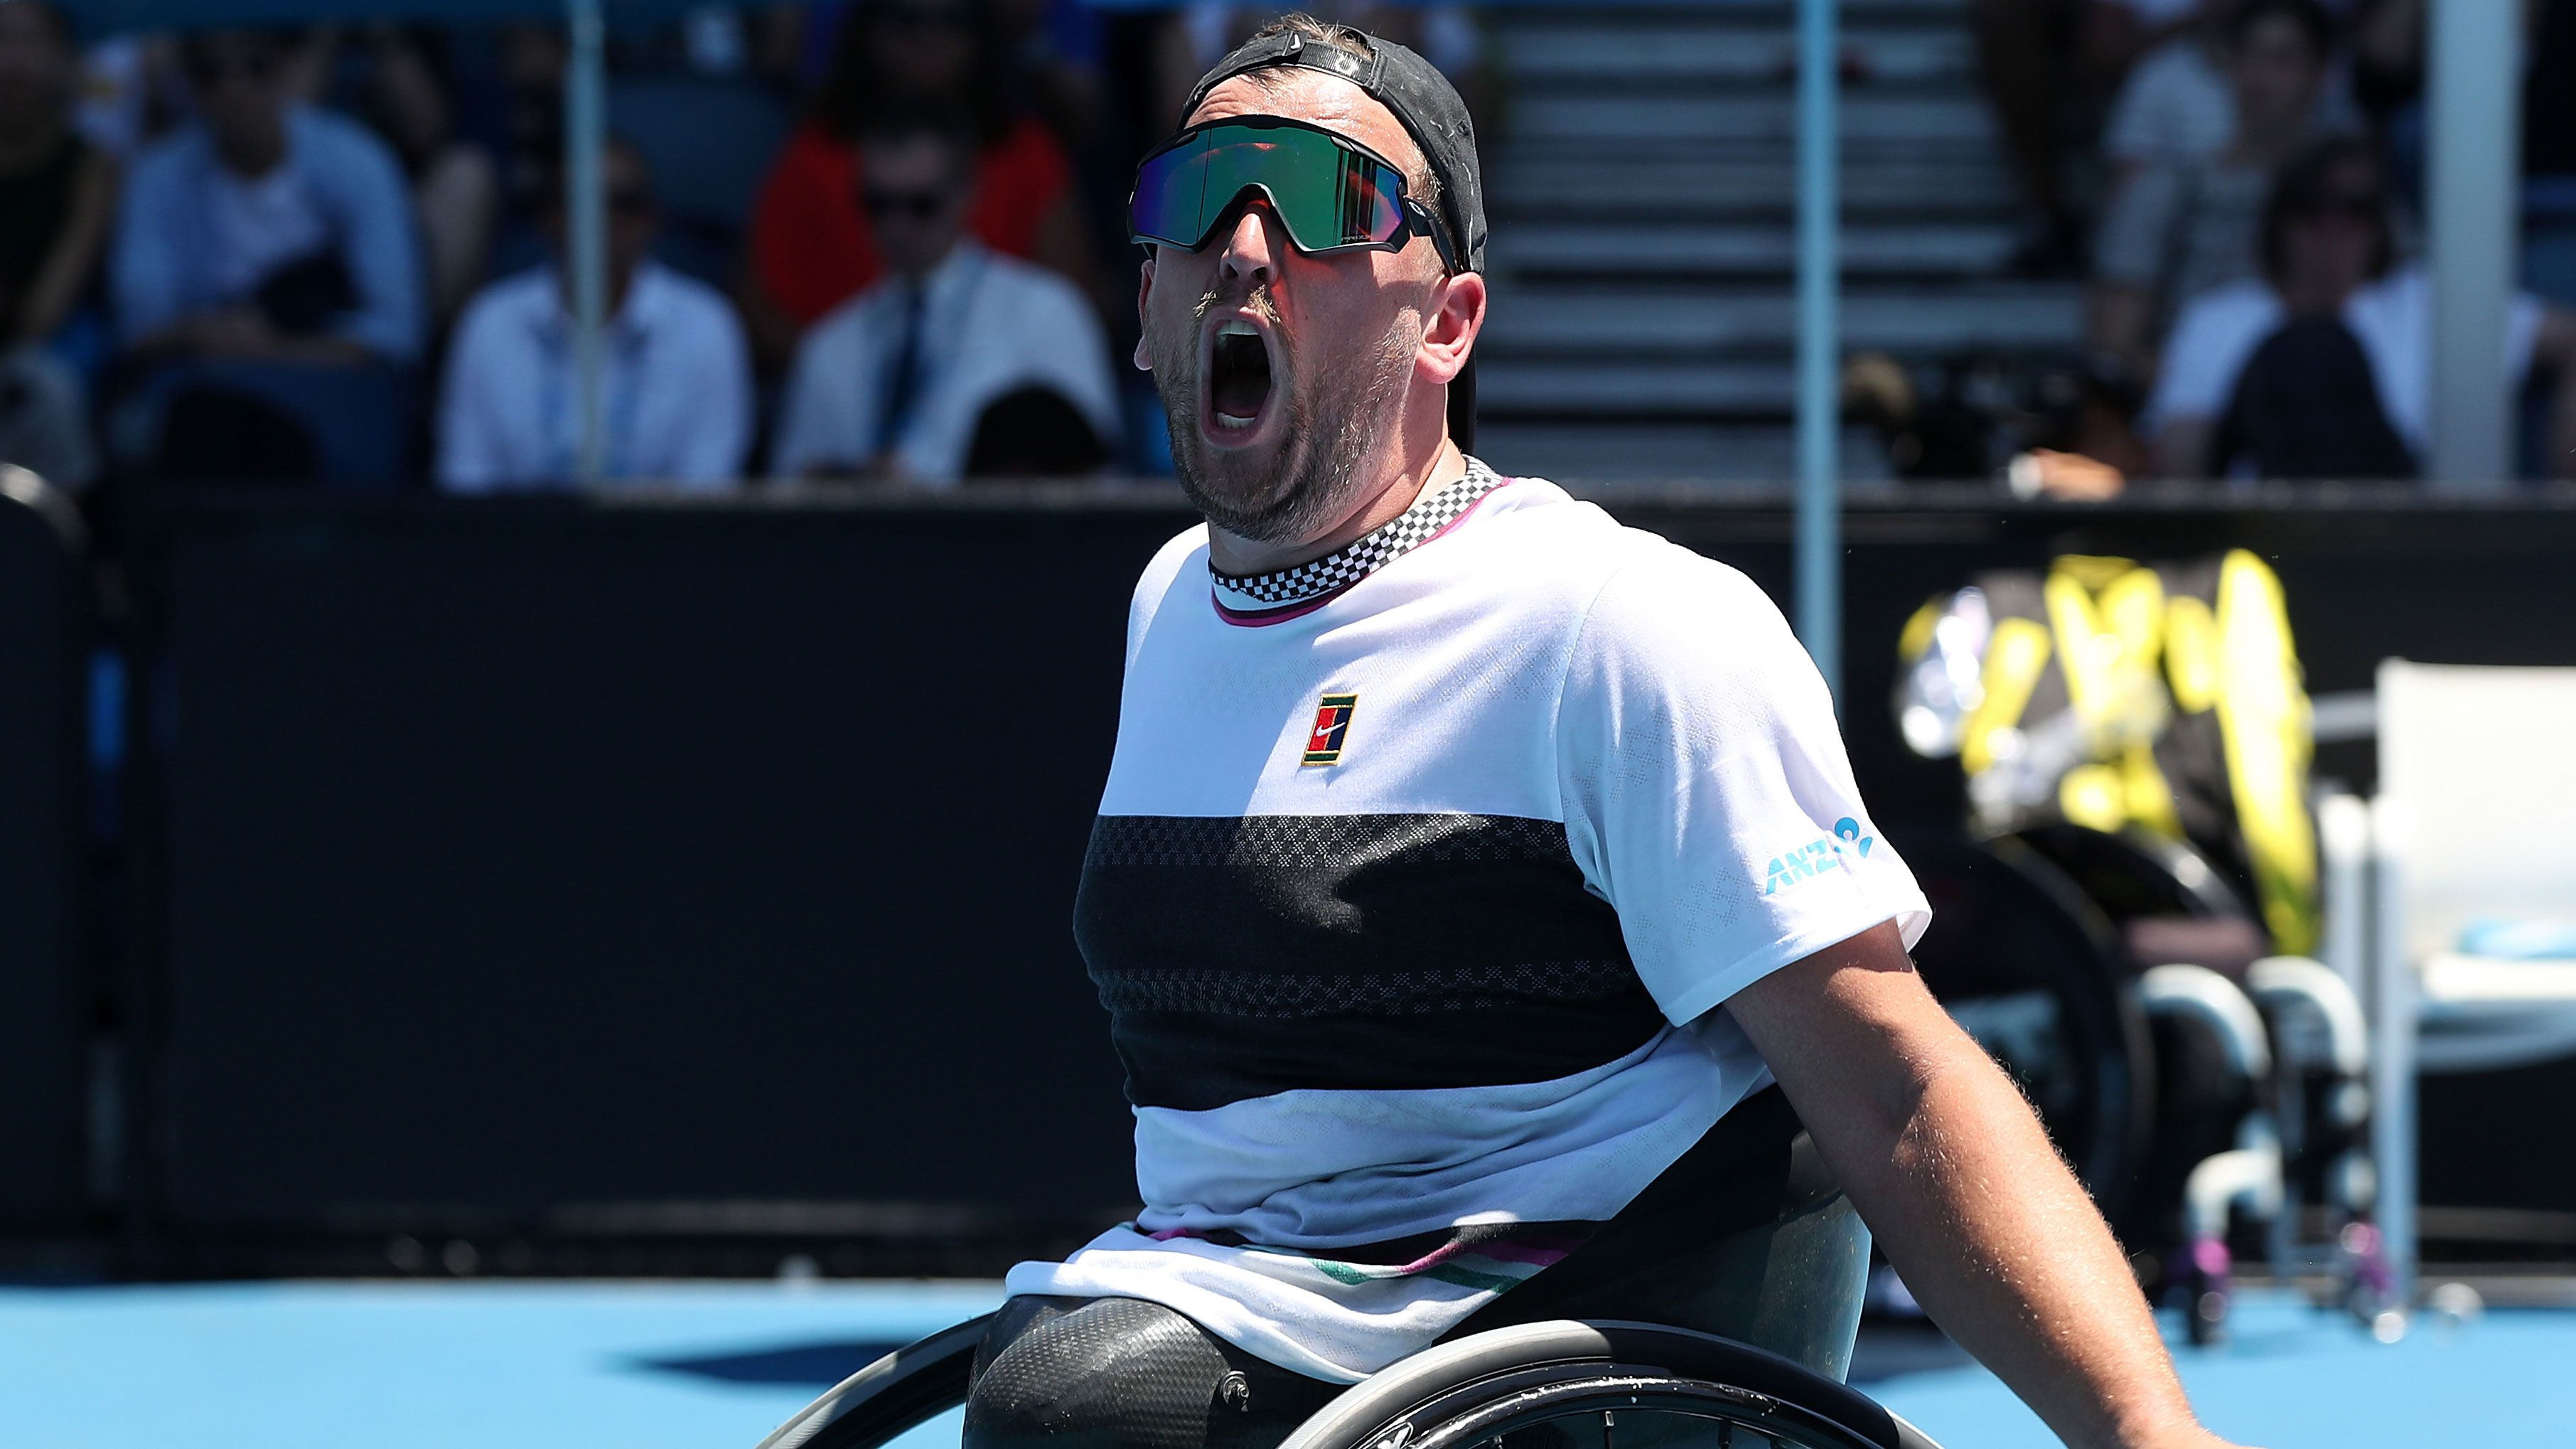 Dylan Alcott delivers inspiring message after thrilling victory in Australian Open